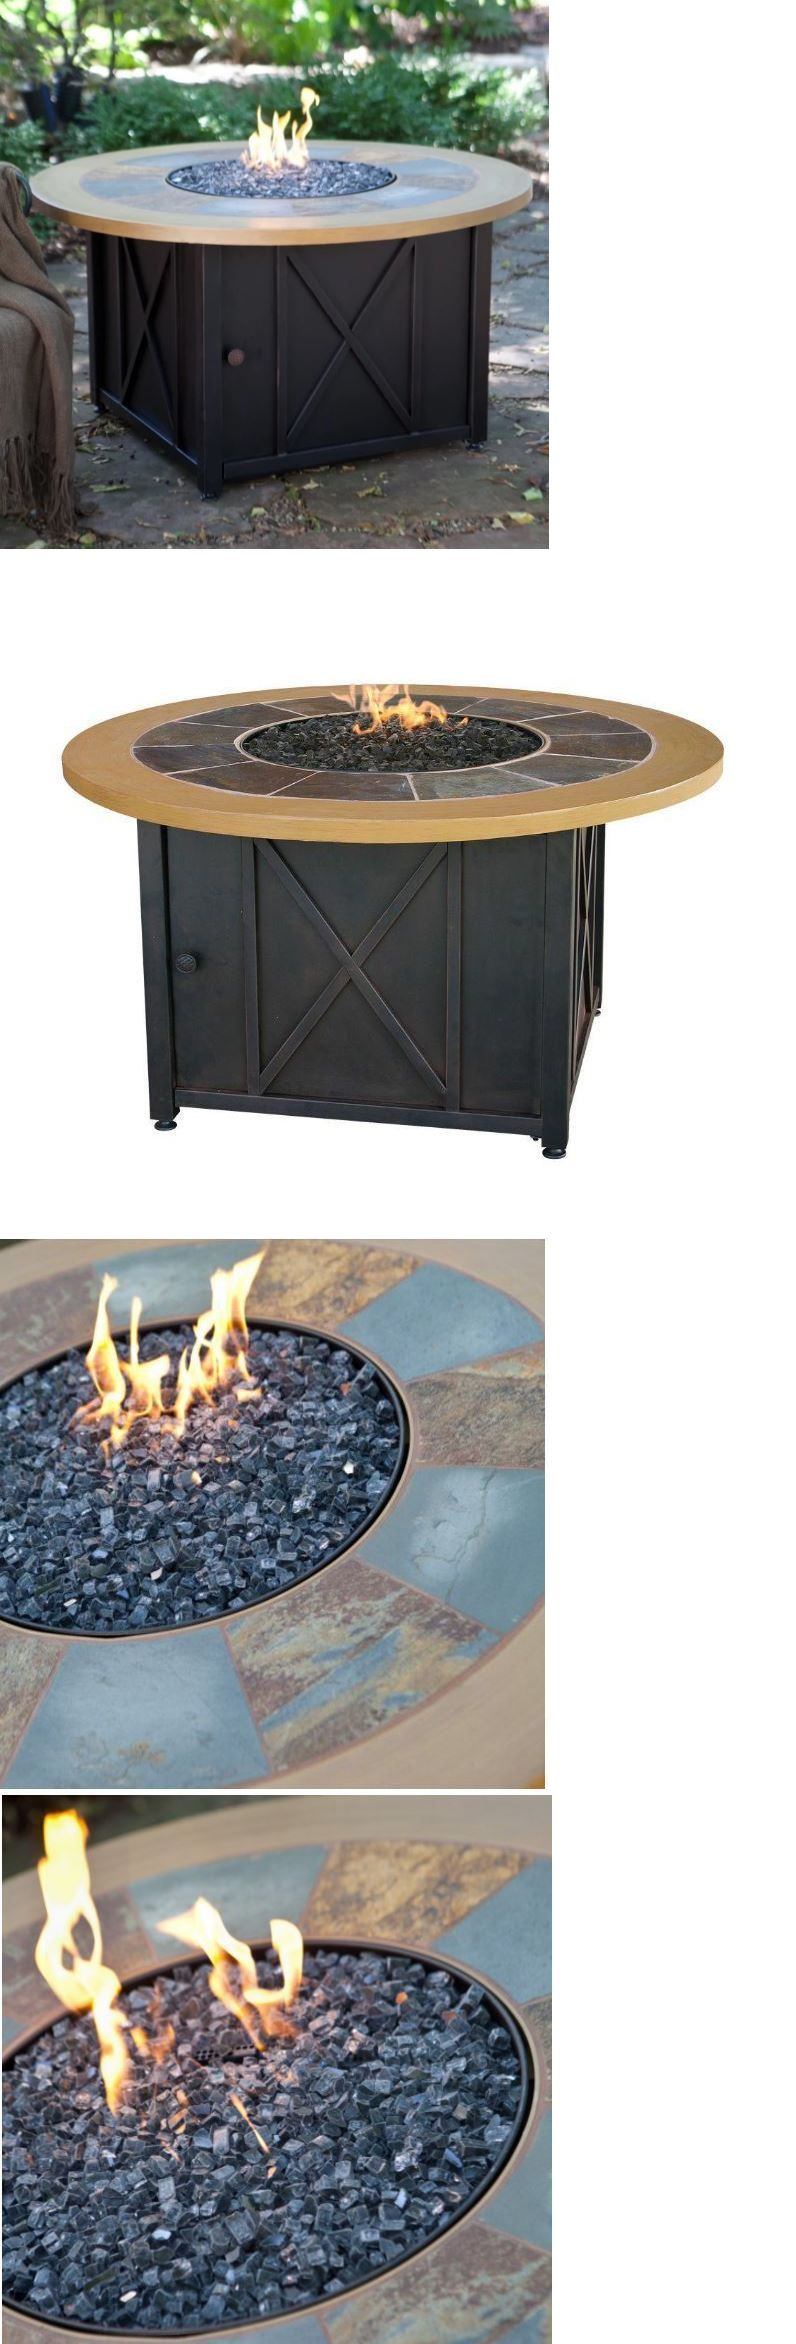 fire pits and chimineas 85916 patio fire pit table outdoor gas